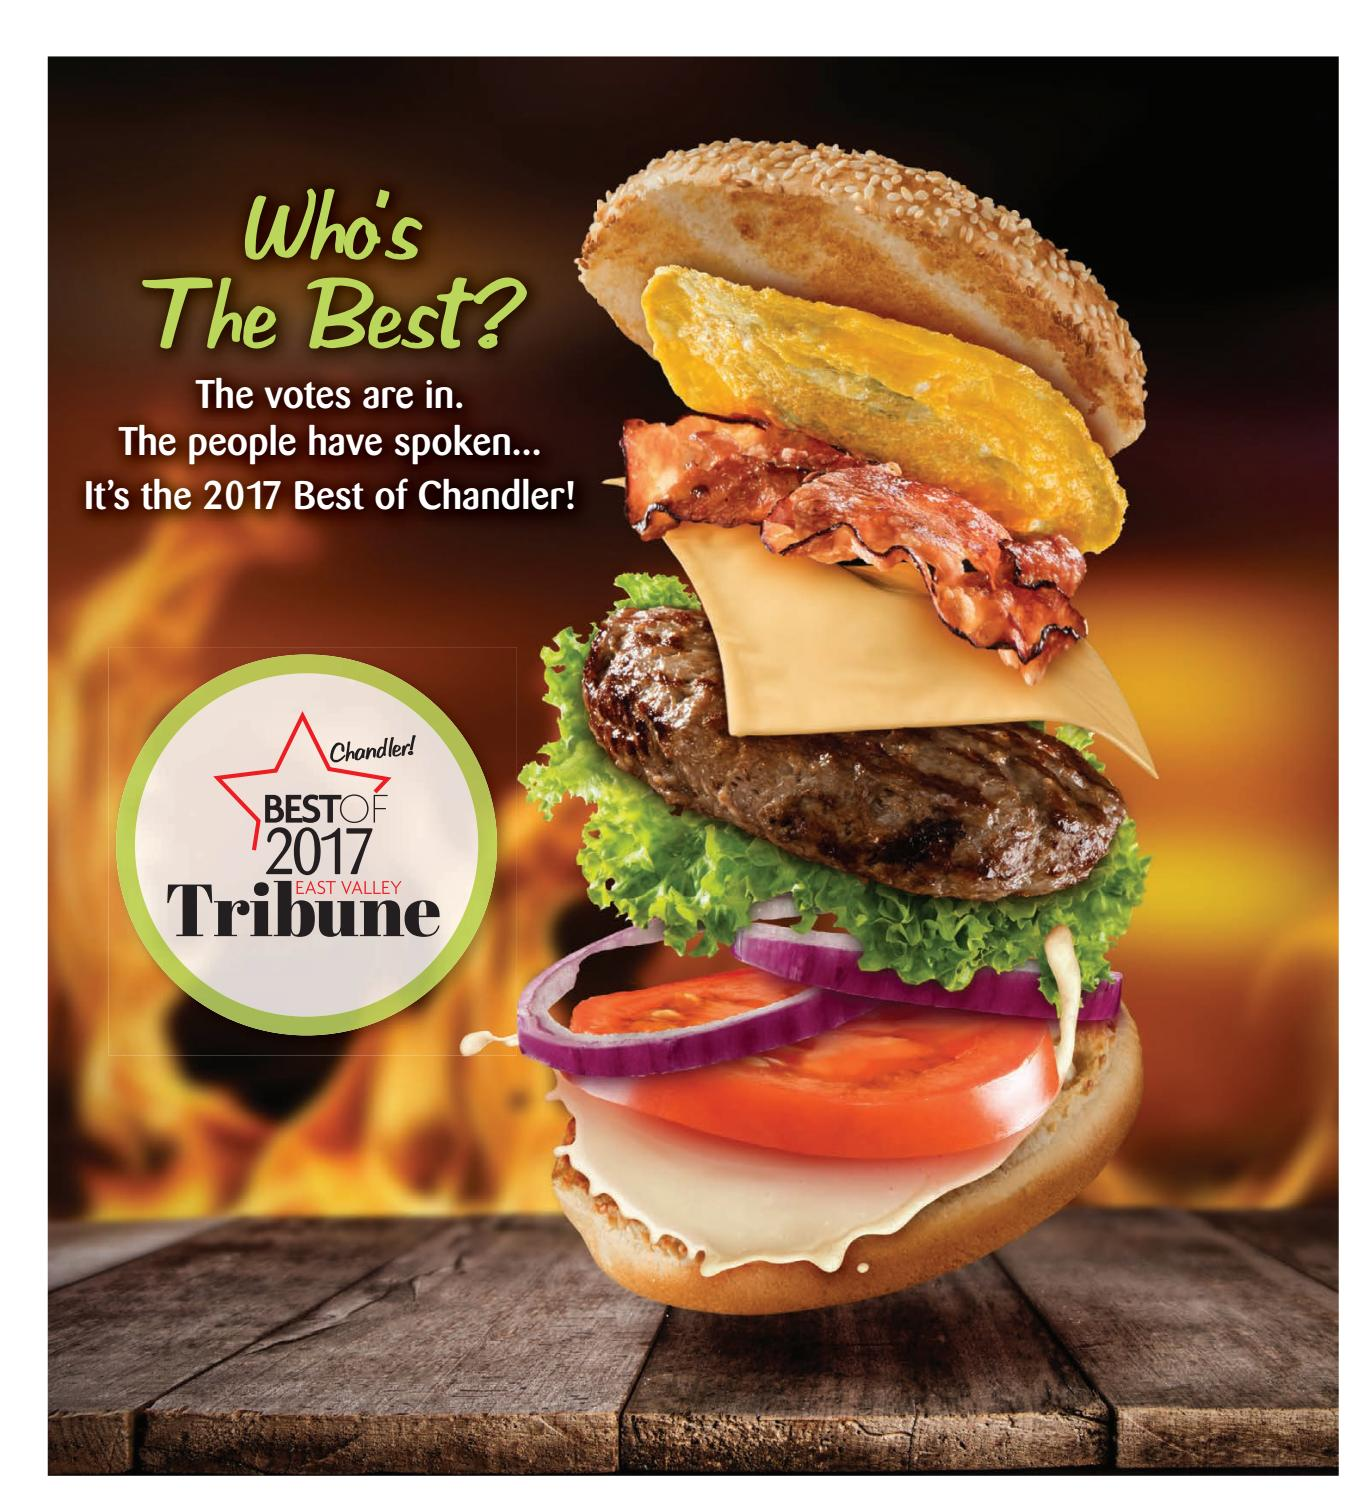 f894b067 Best of chandler - 2017 by Times Media Group - issuu